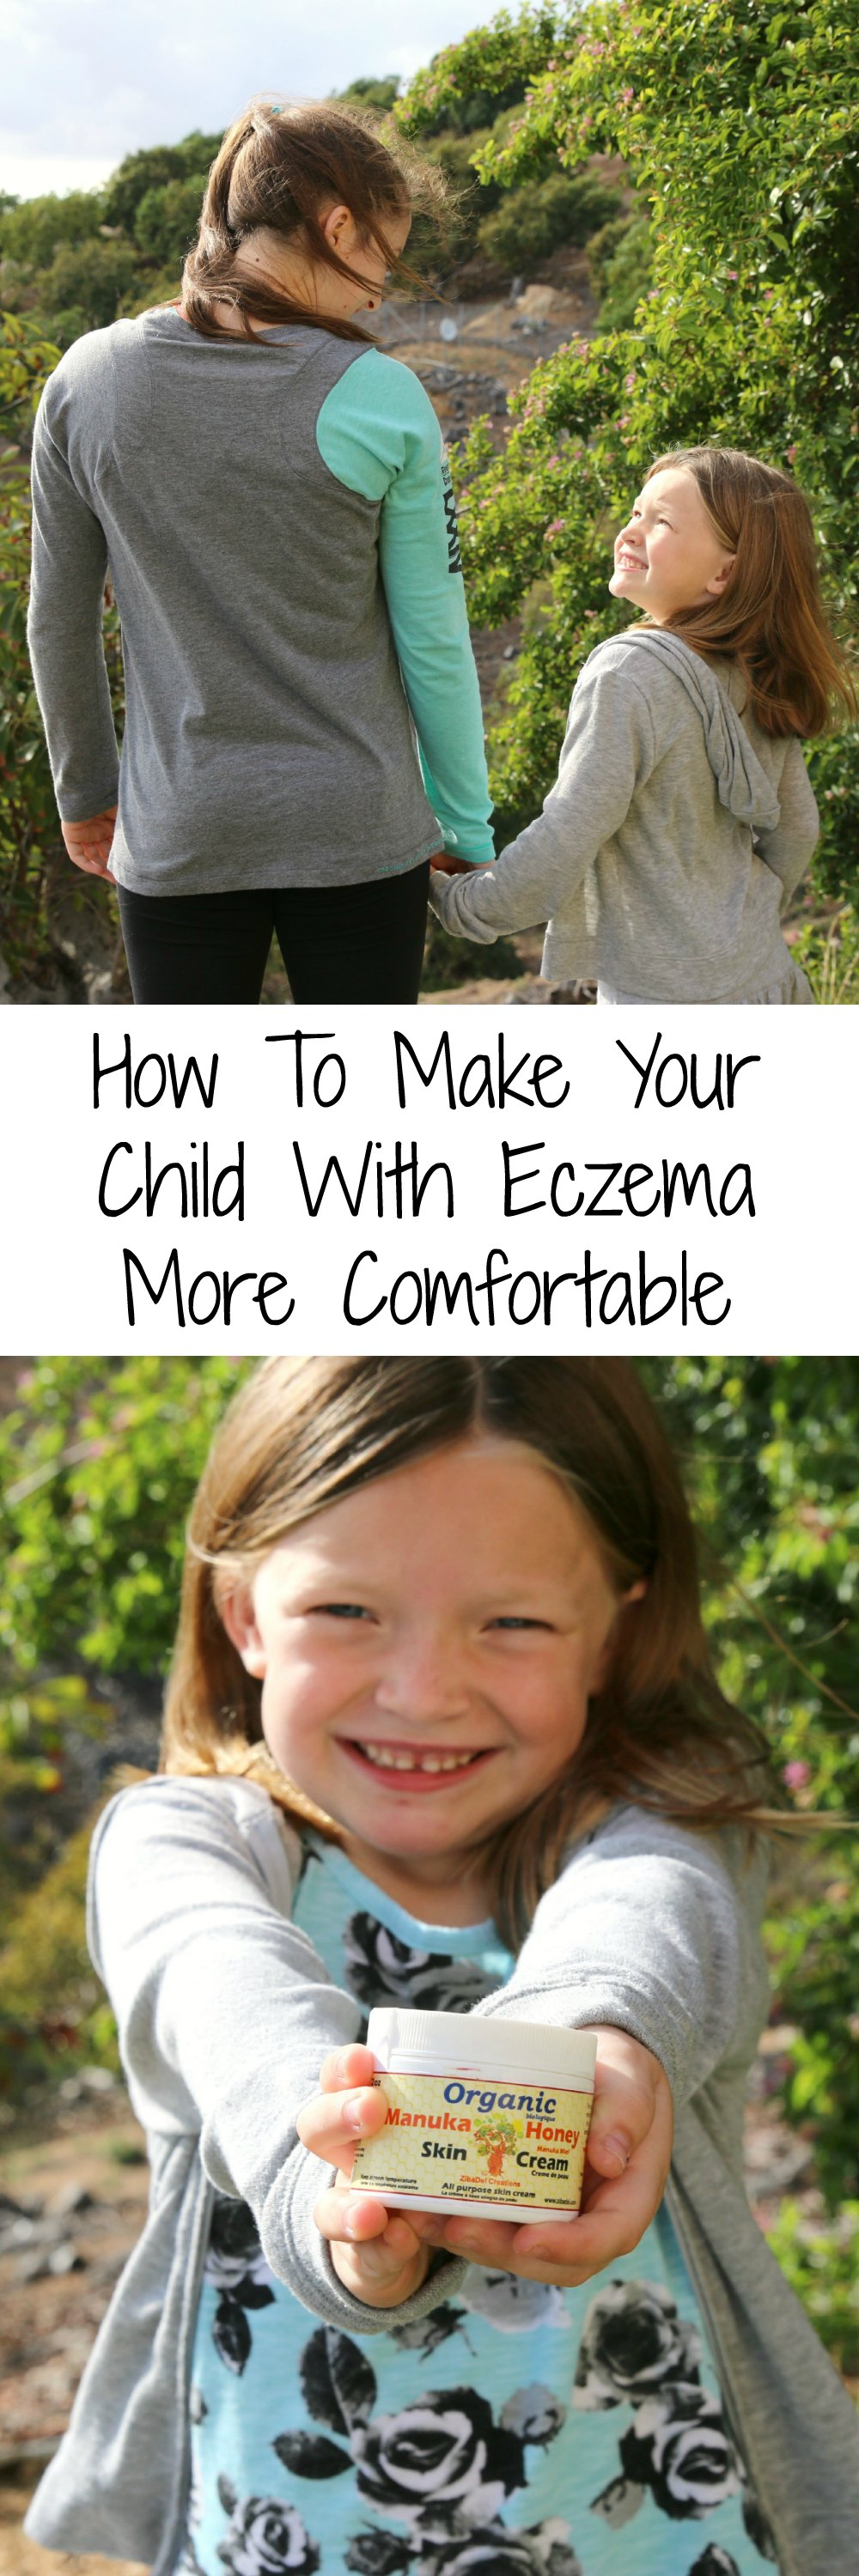 How To Make Your Child With Eczema More Comfortable